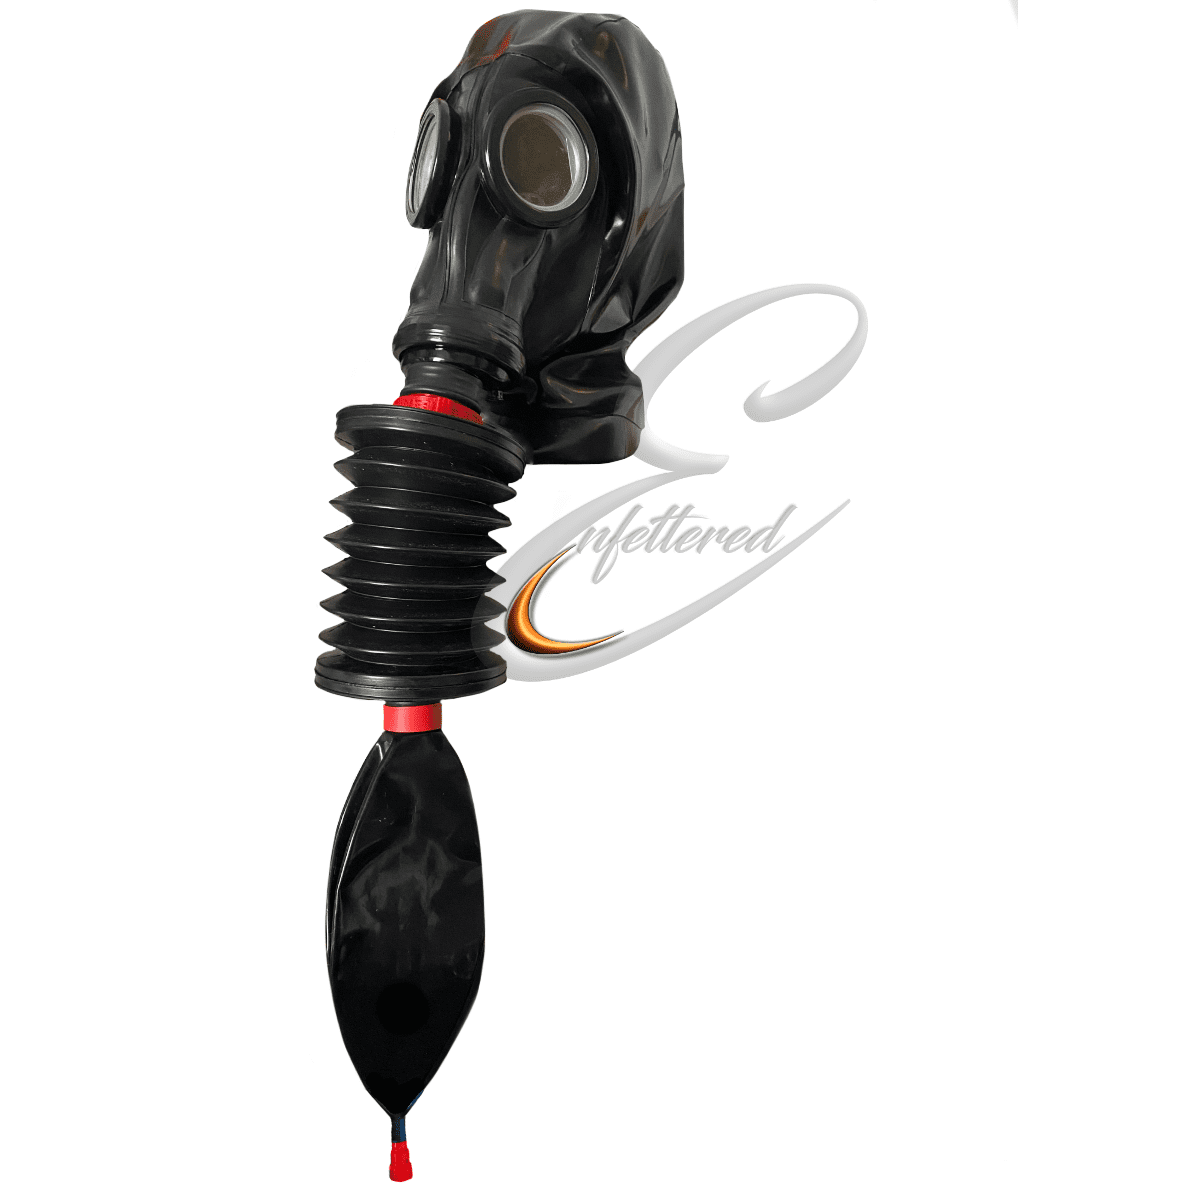 Enfettered Russian Gas Mask Hood with Rebreather Bellows